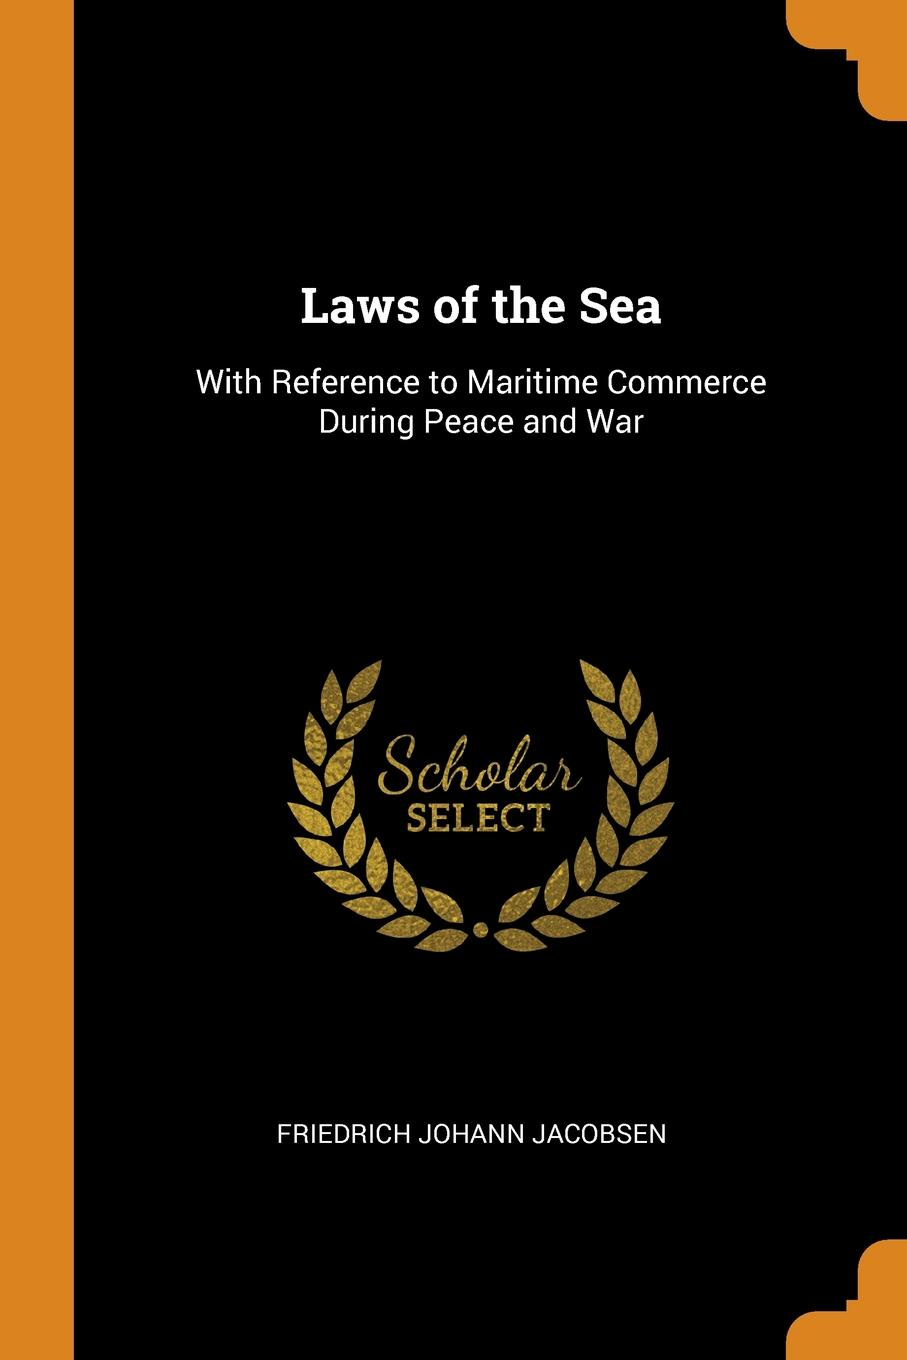 Laws of the Sea. With Reference to Maritime Commerce During Peace and War. Friedrich Johann Jacobsen